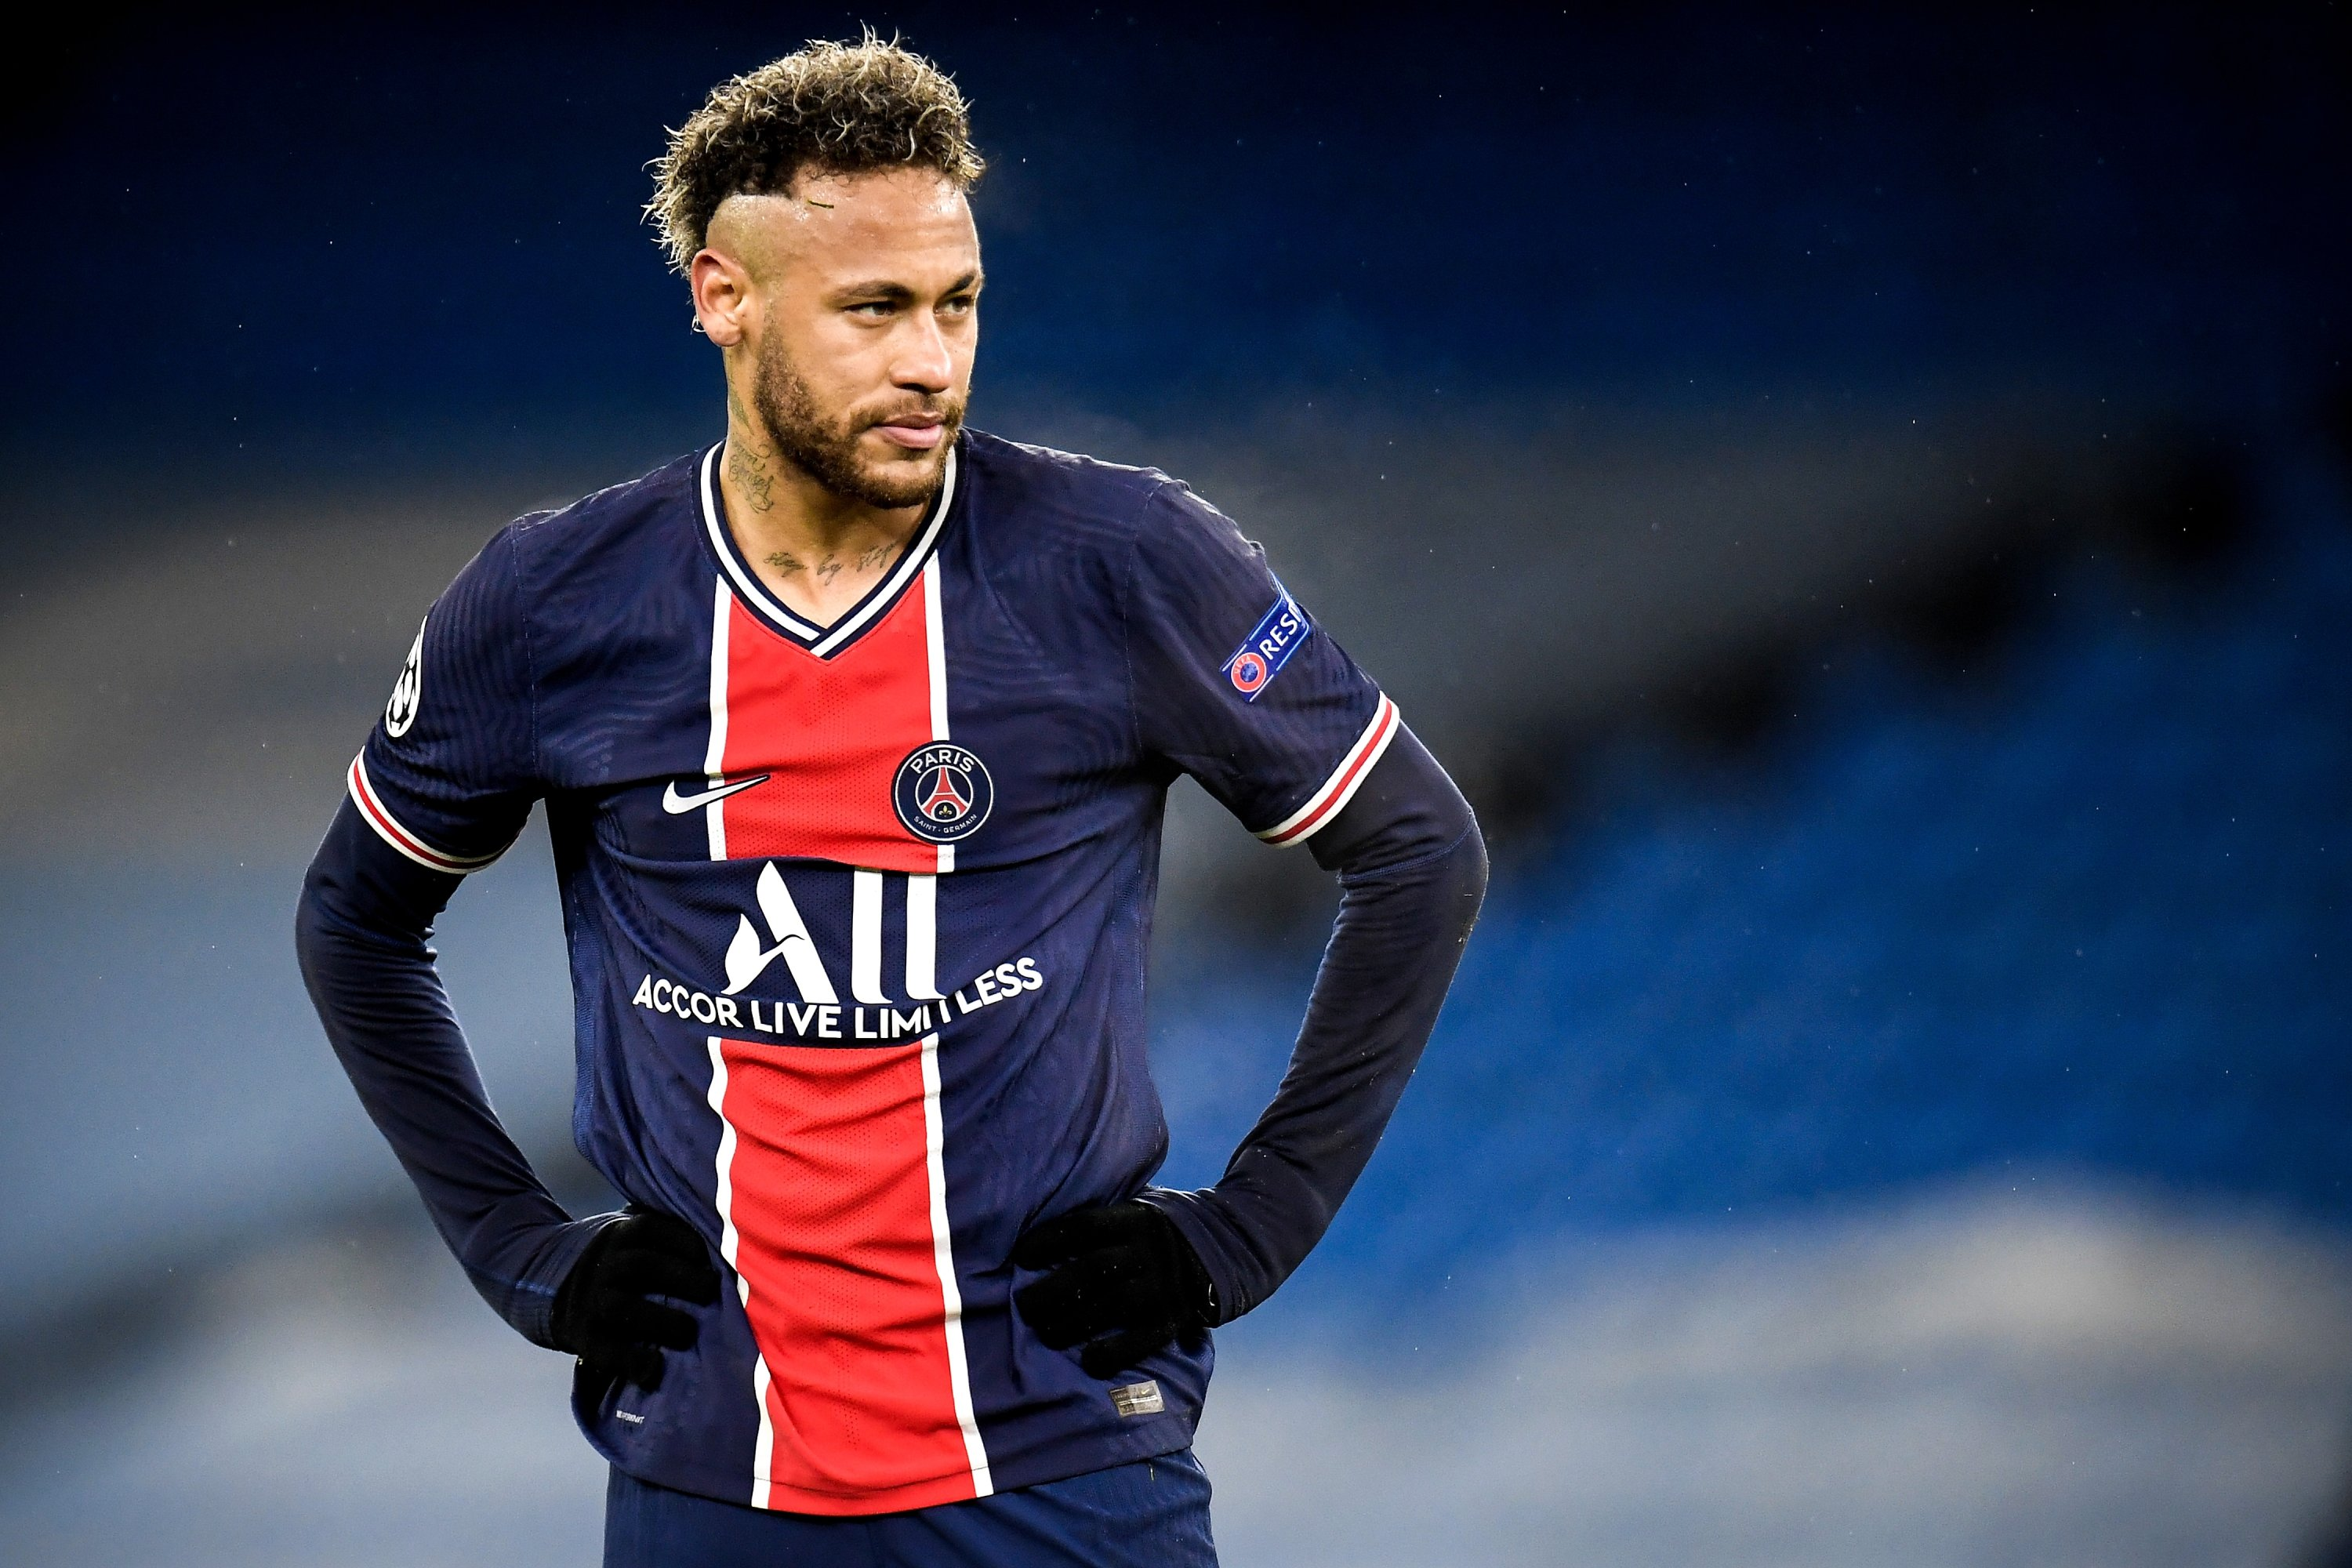 Neymar agrees on contract extension until 2025 with PSG | Daily Sabah